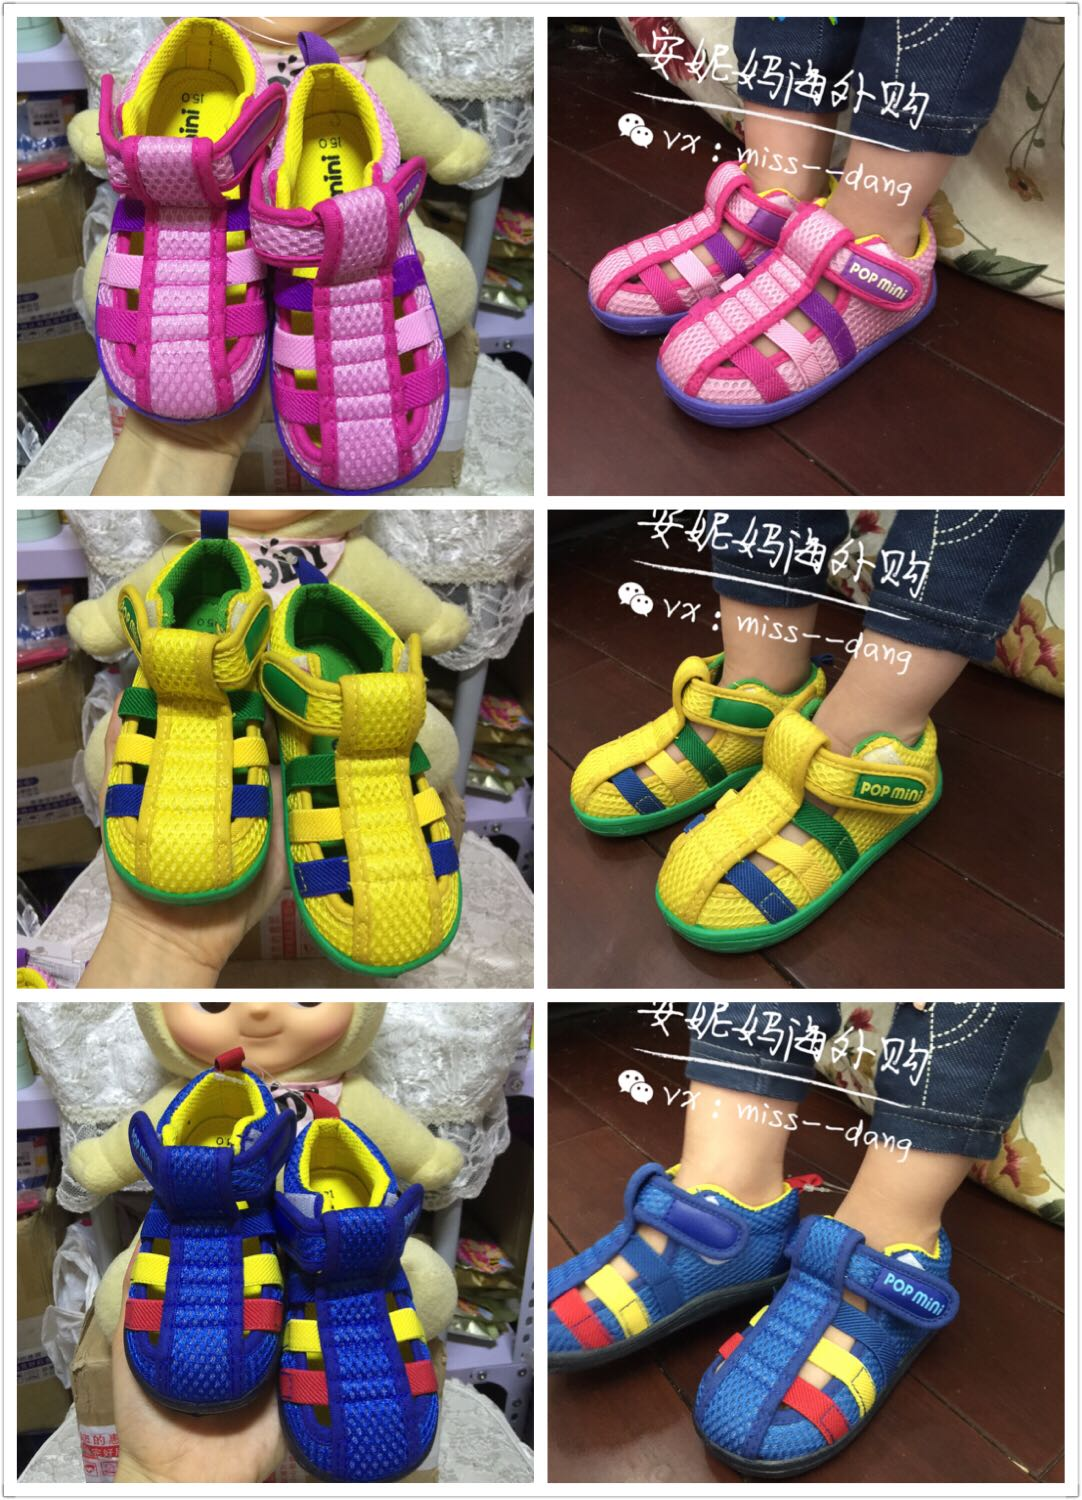 Japanese xisongwu sandals childrens walking shoes soft bottom anti slip mens and womens baby mesh sandals functional shoes